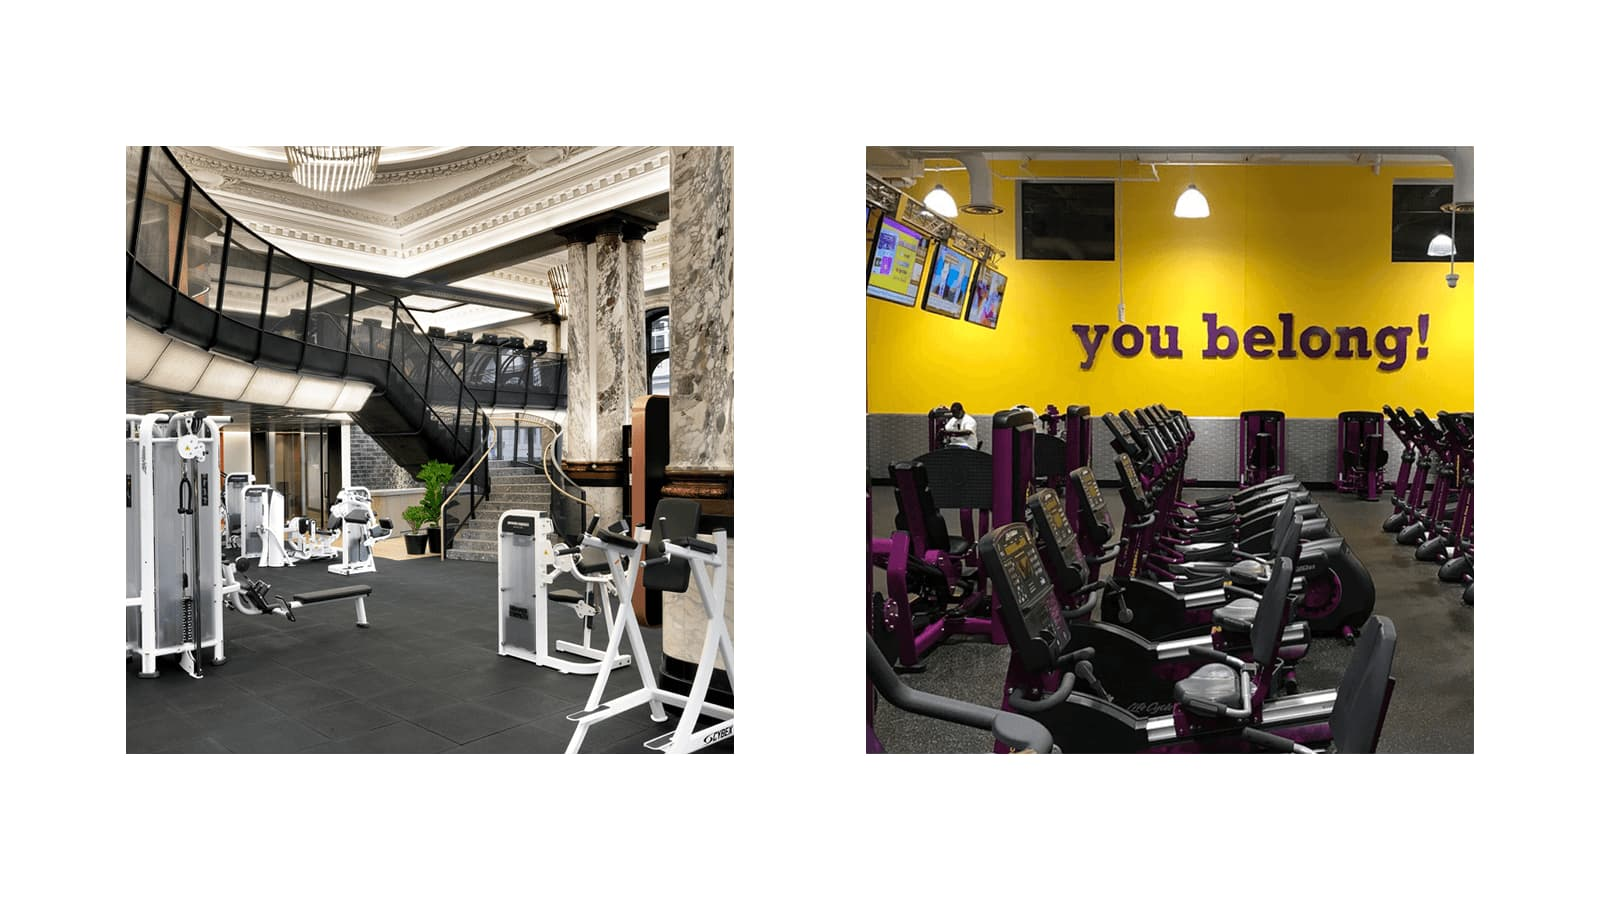 Equinox location in London juxtaposed to Planet Fitness location